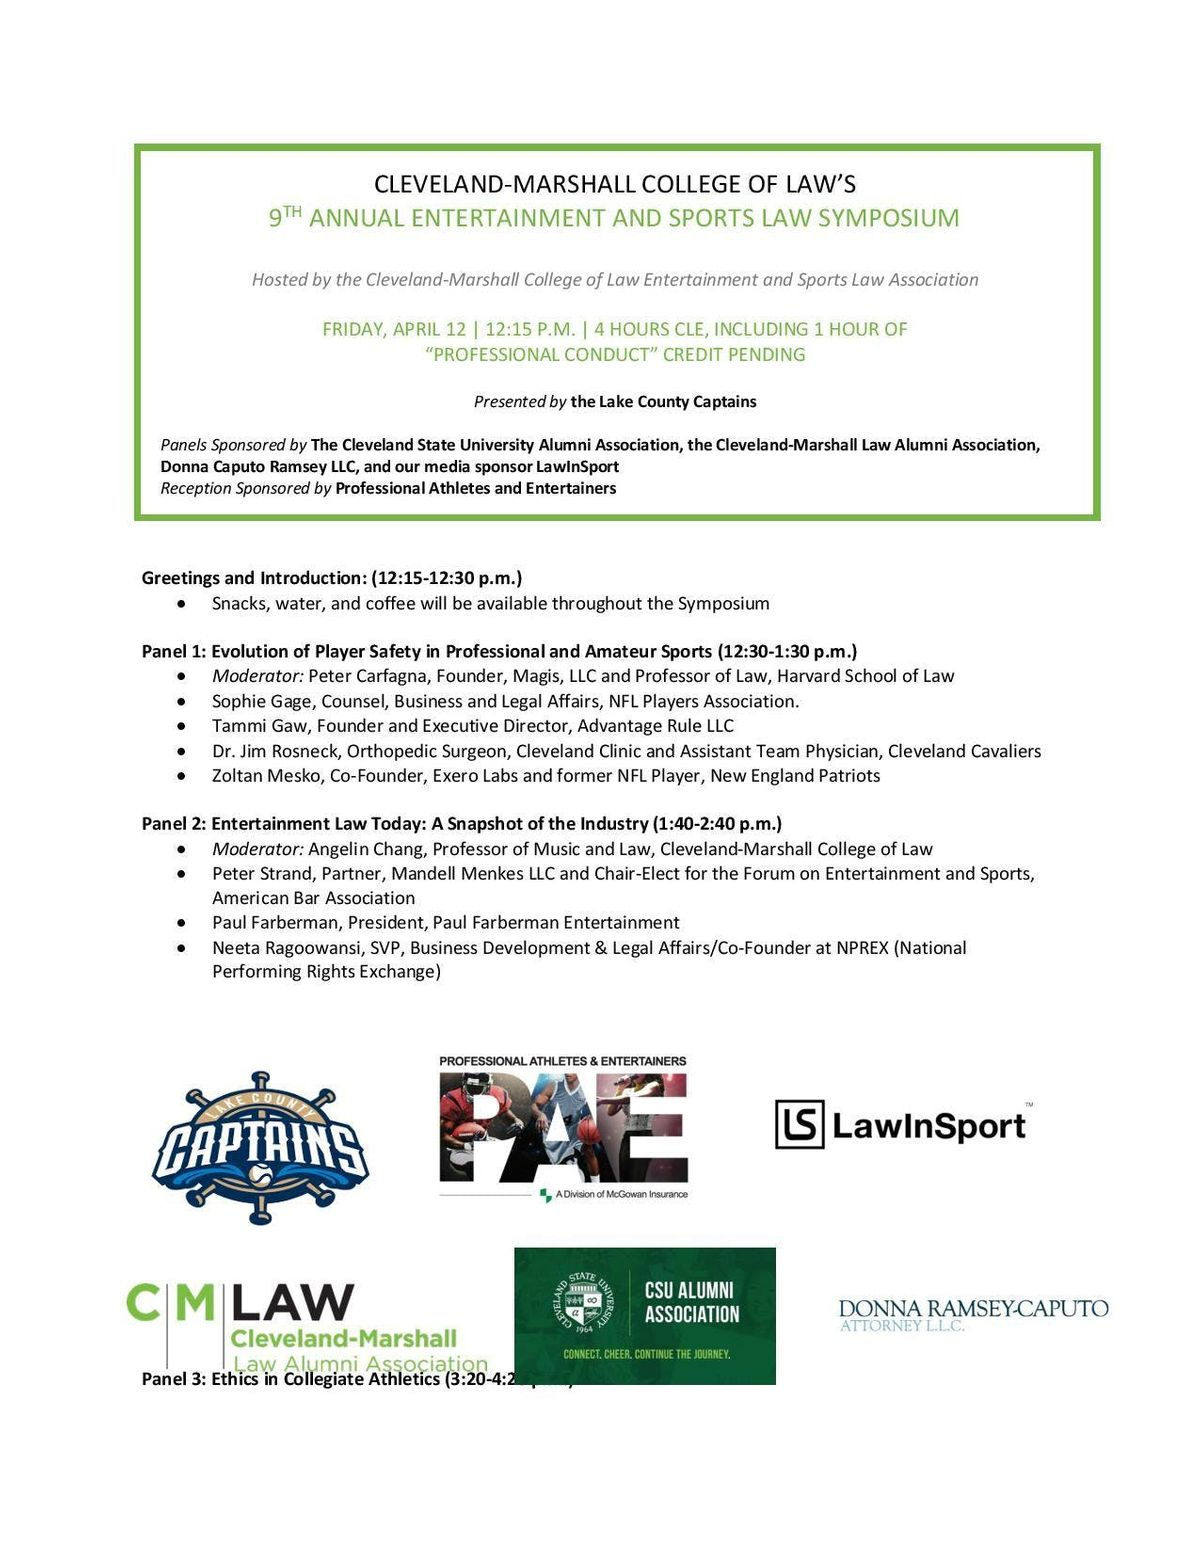 Cleveland-Marshall College of Laws 9th Annual Entertainment and Sports Law Symposium